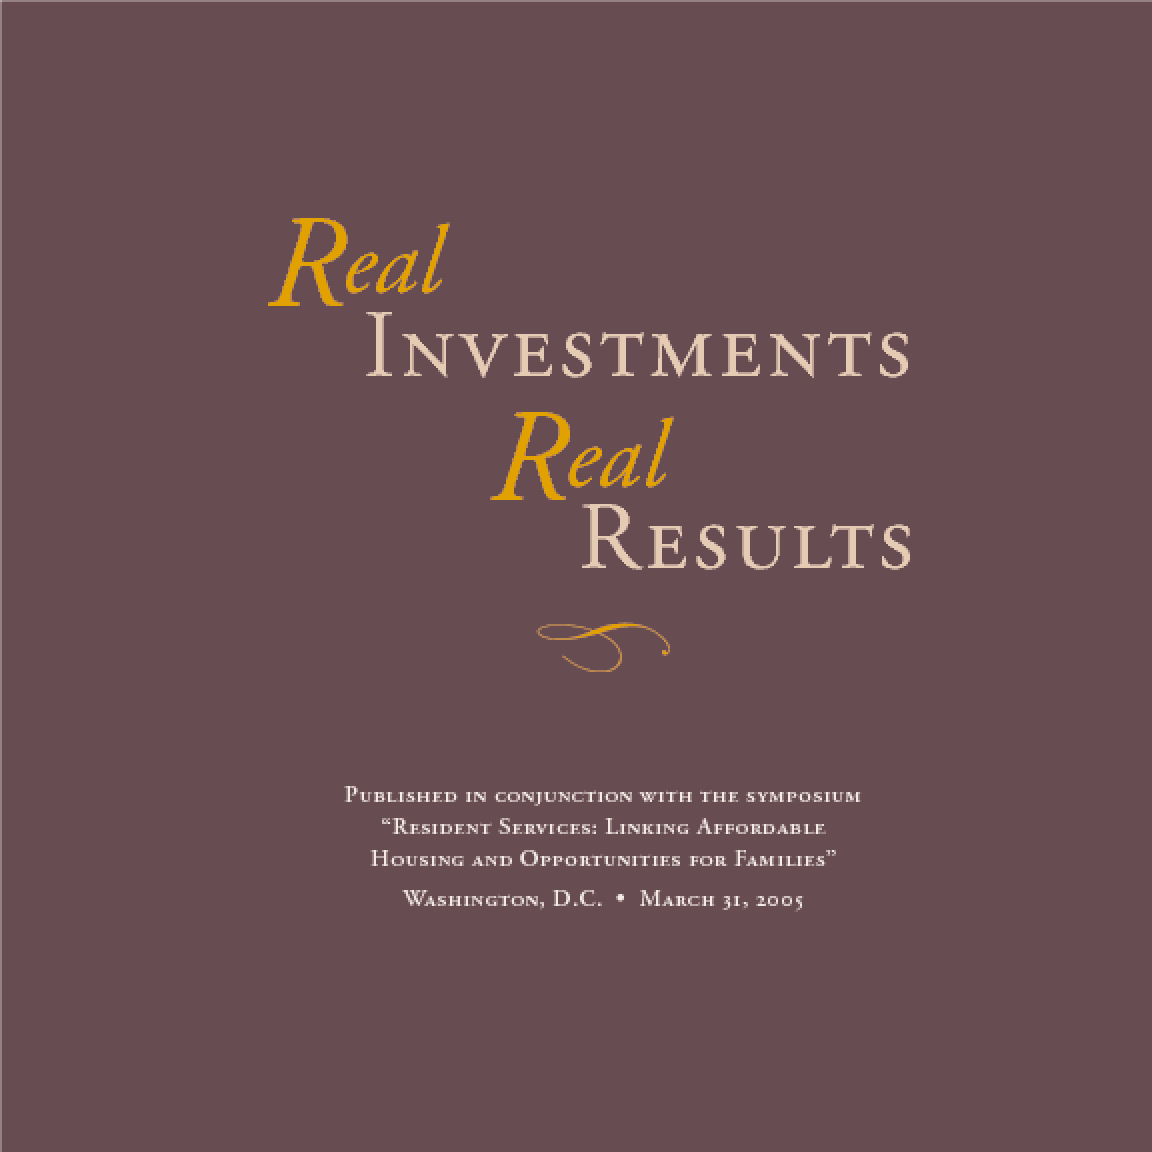 Real Investments, Real Results